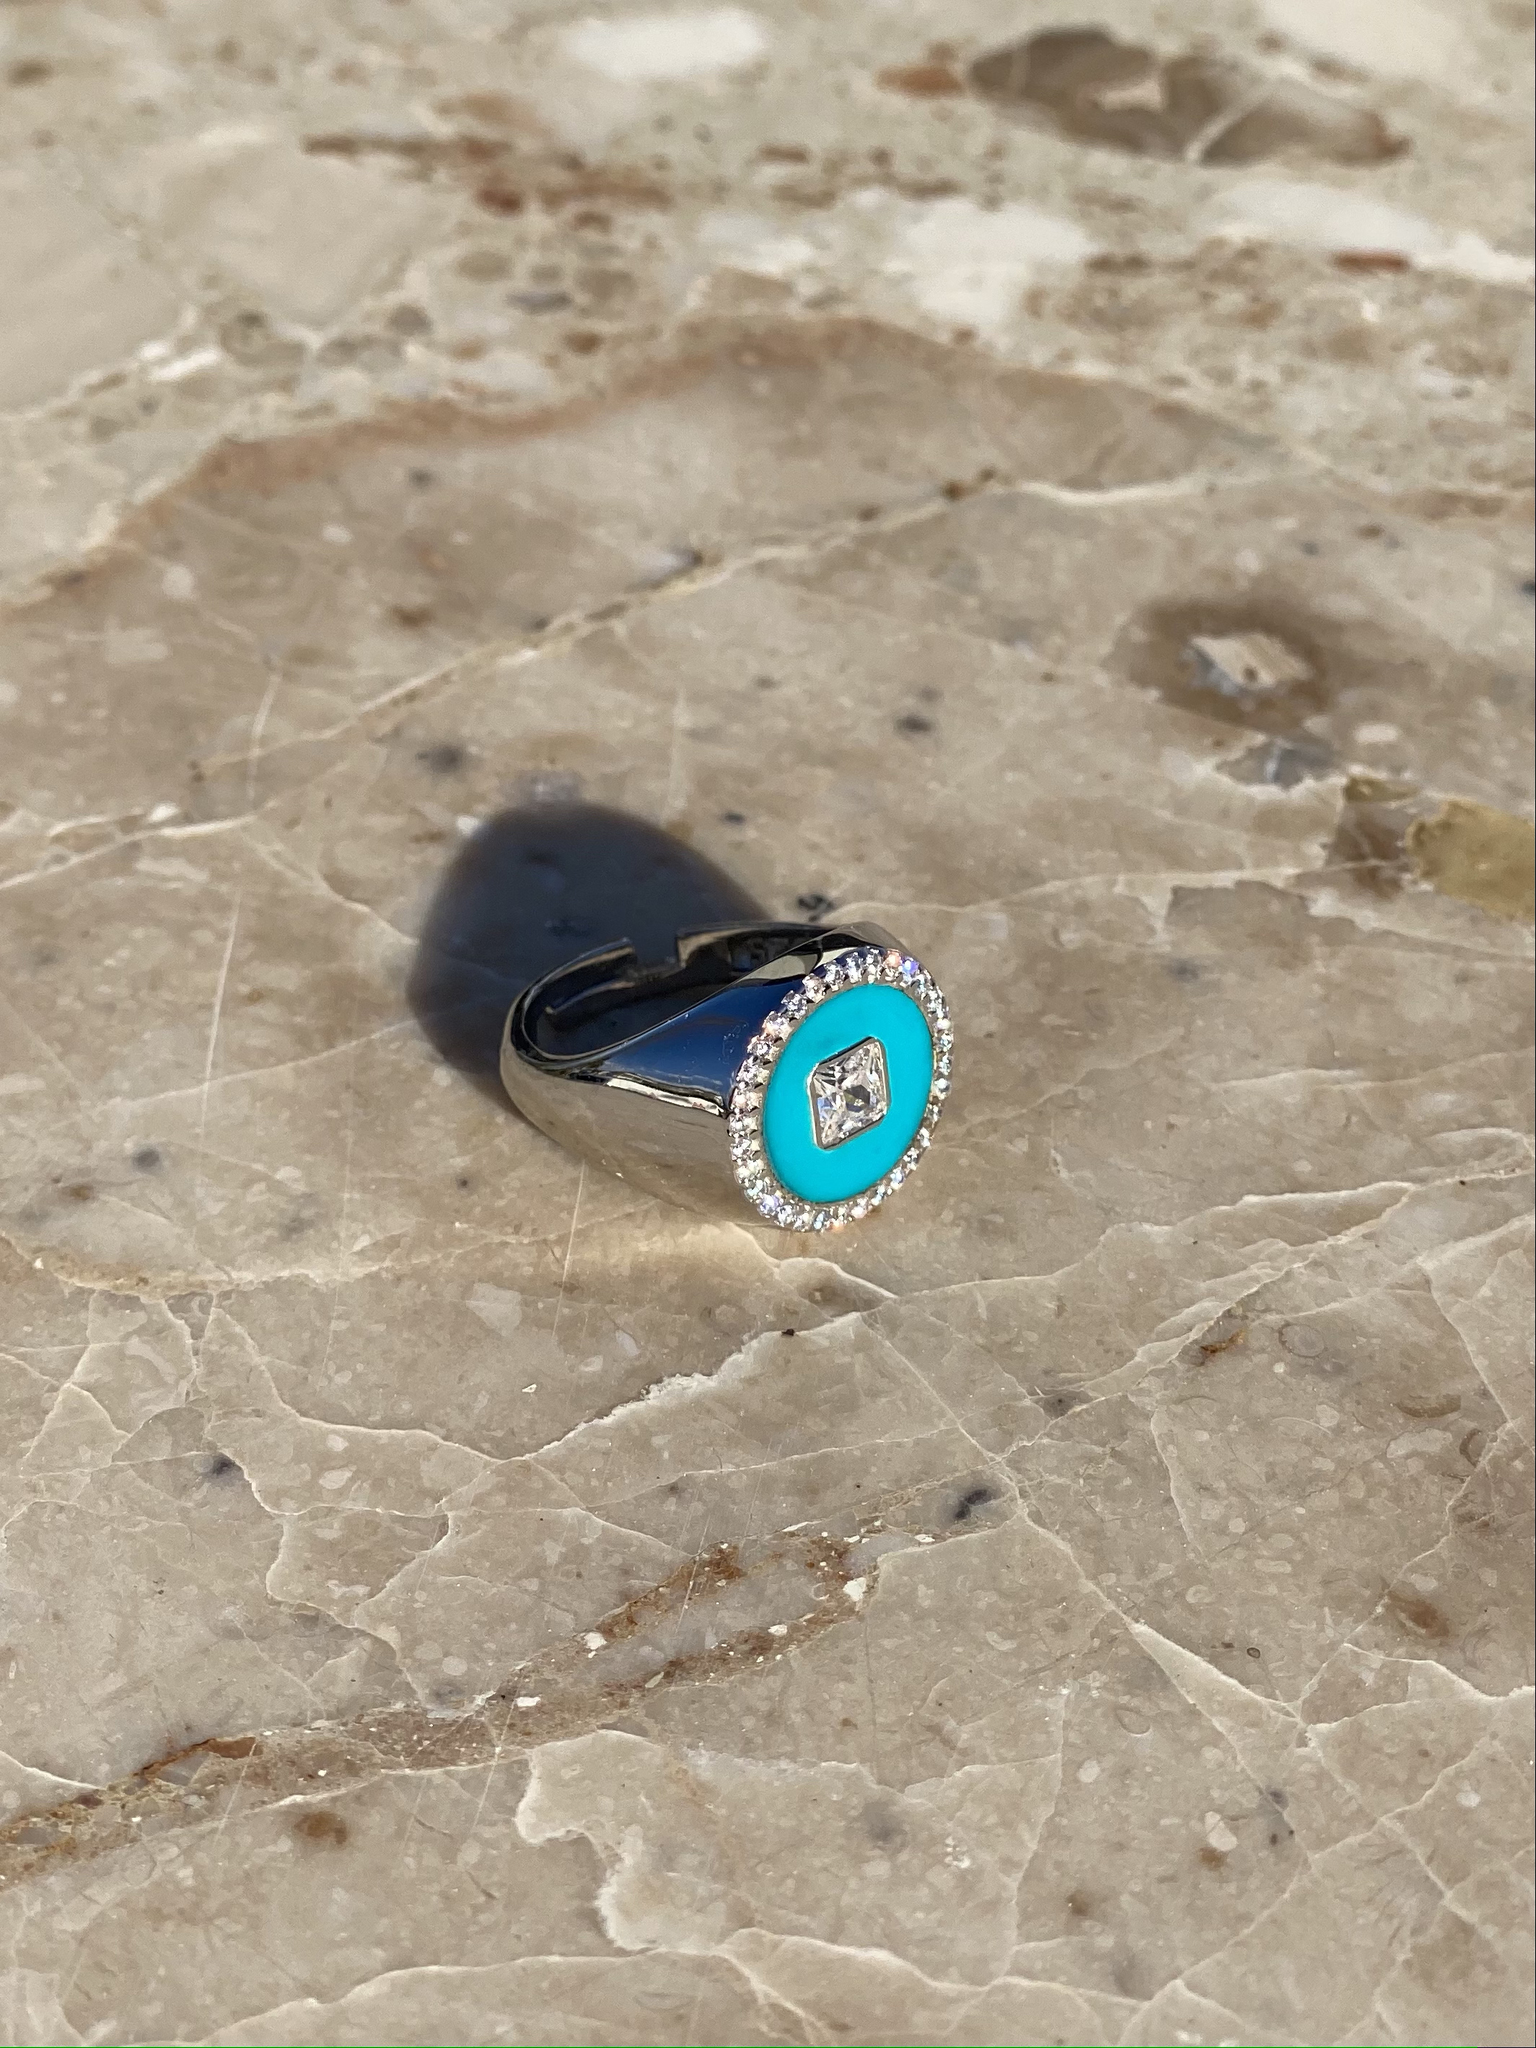 Round signet ring in silver and light blue enamel